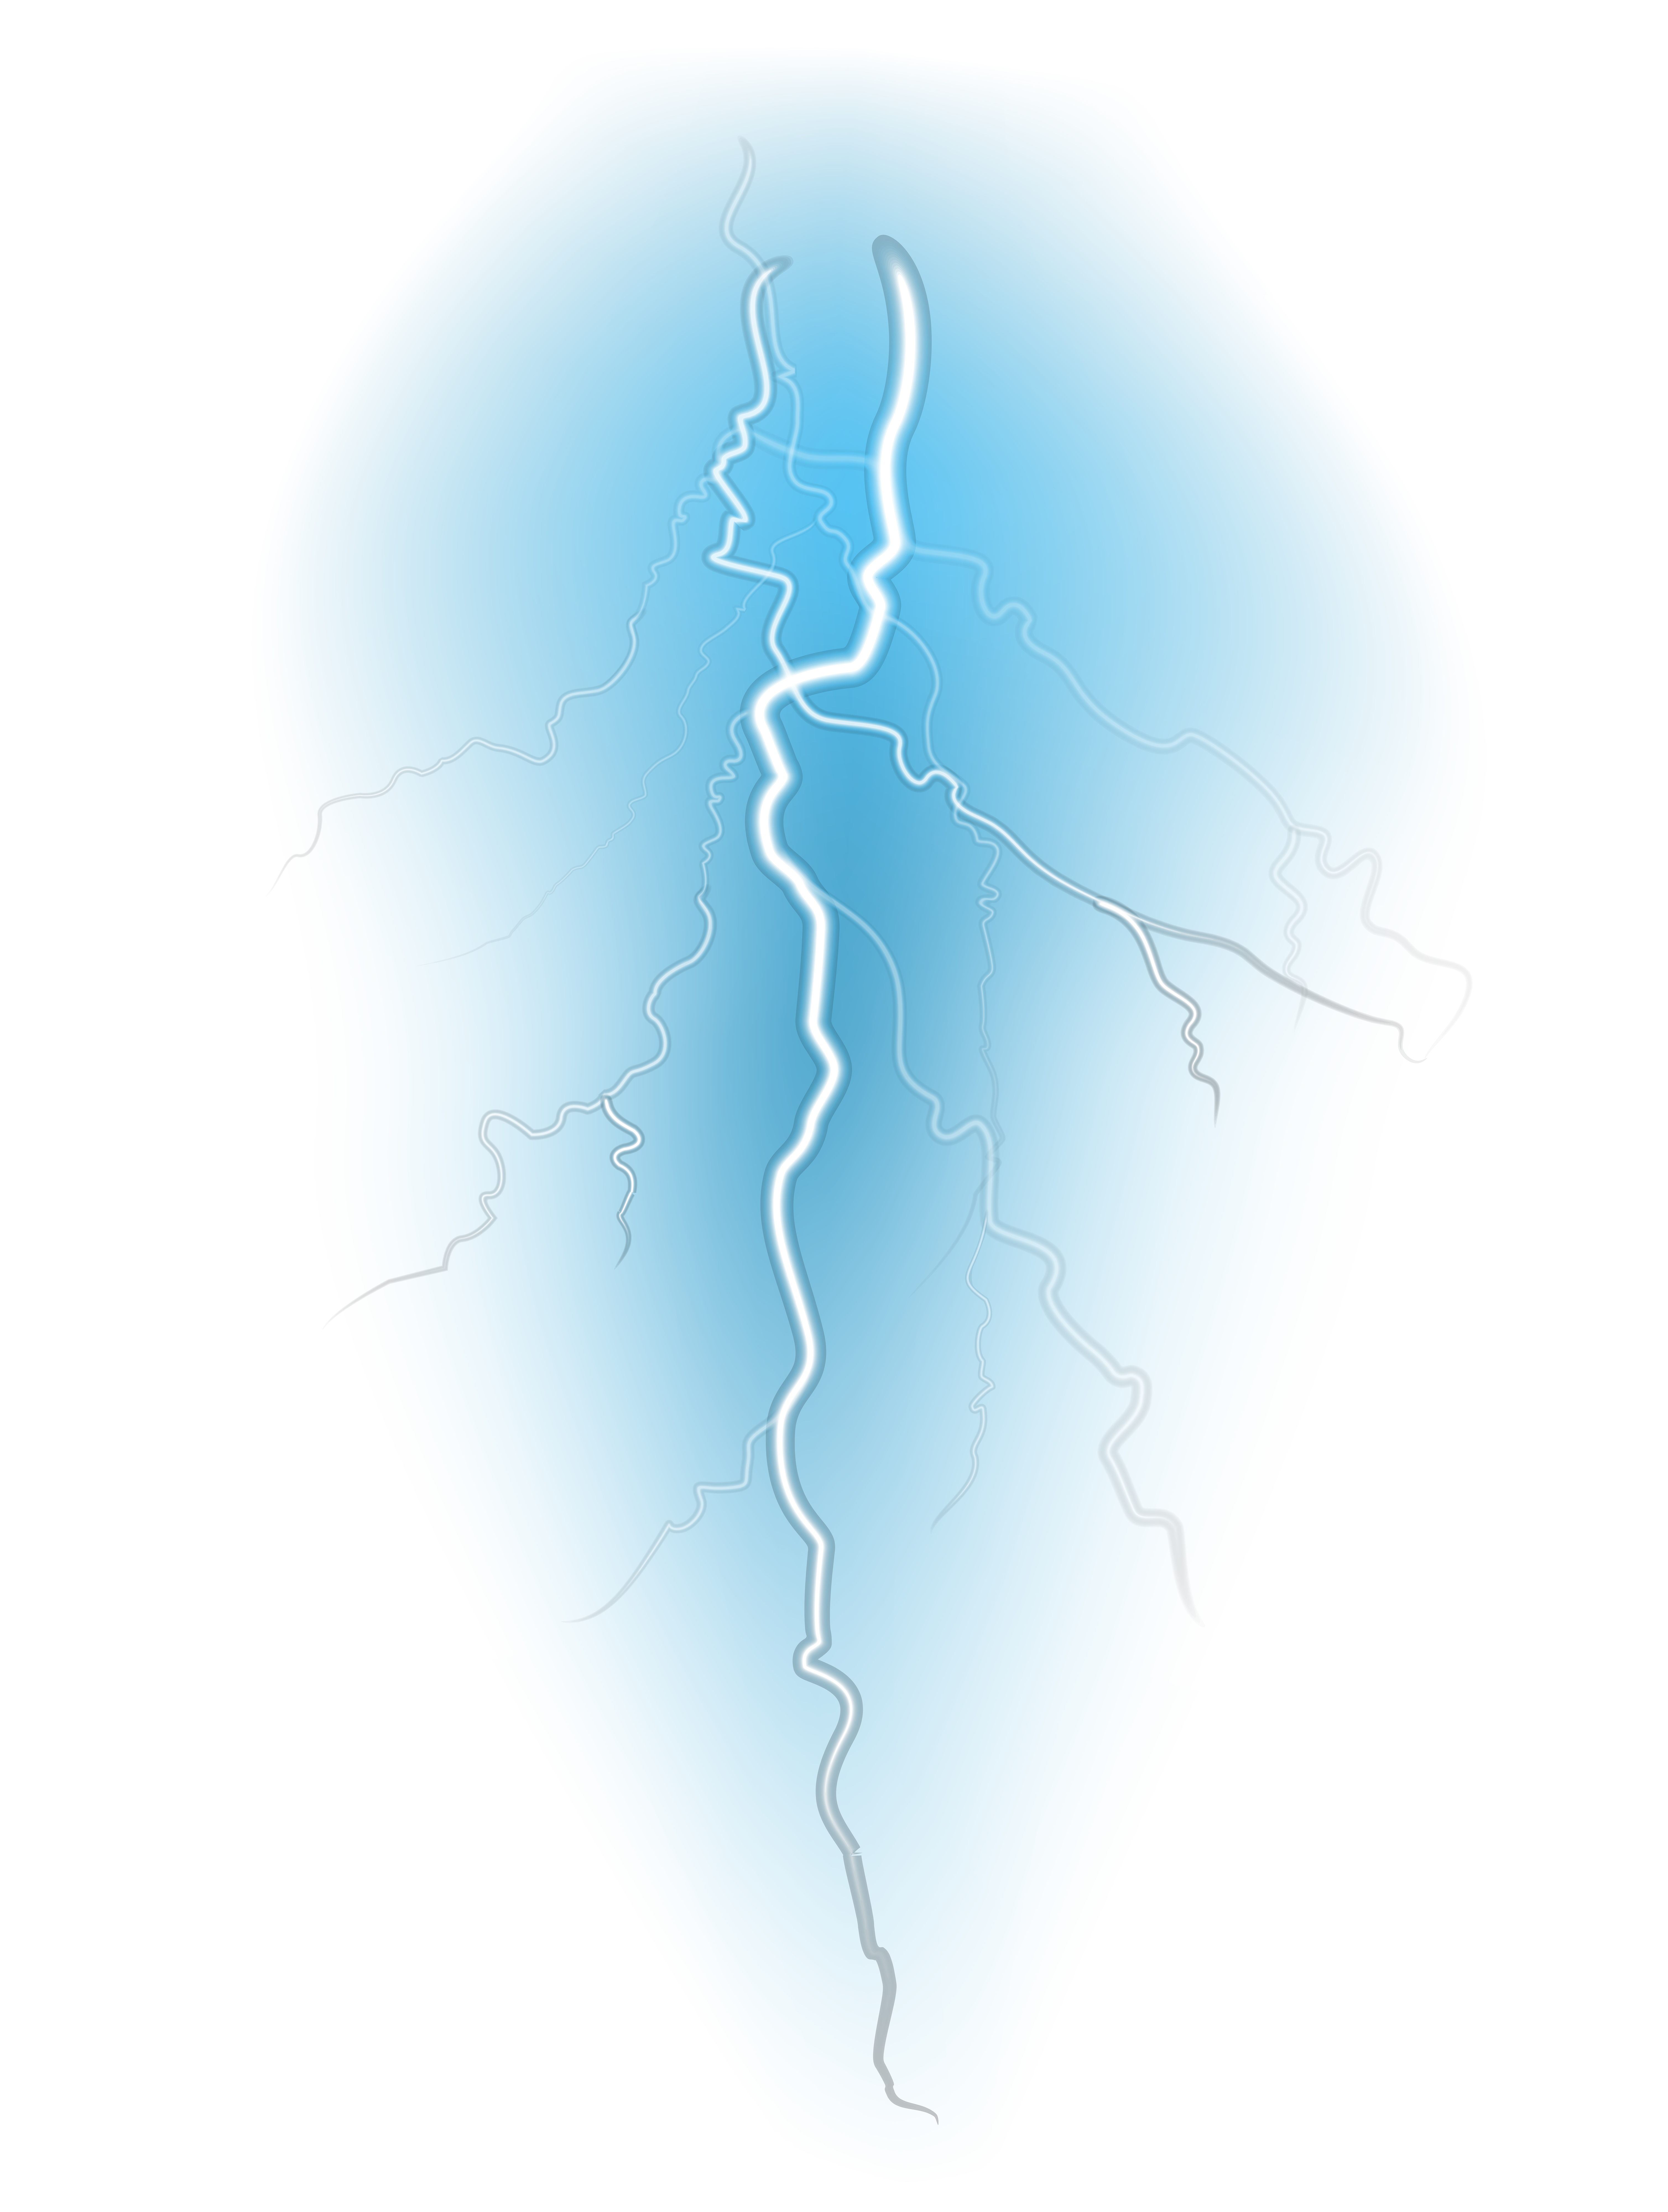 Transparent clip art image. Lightning clouds png clip free library